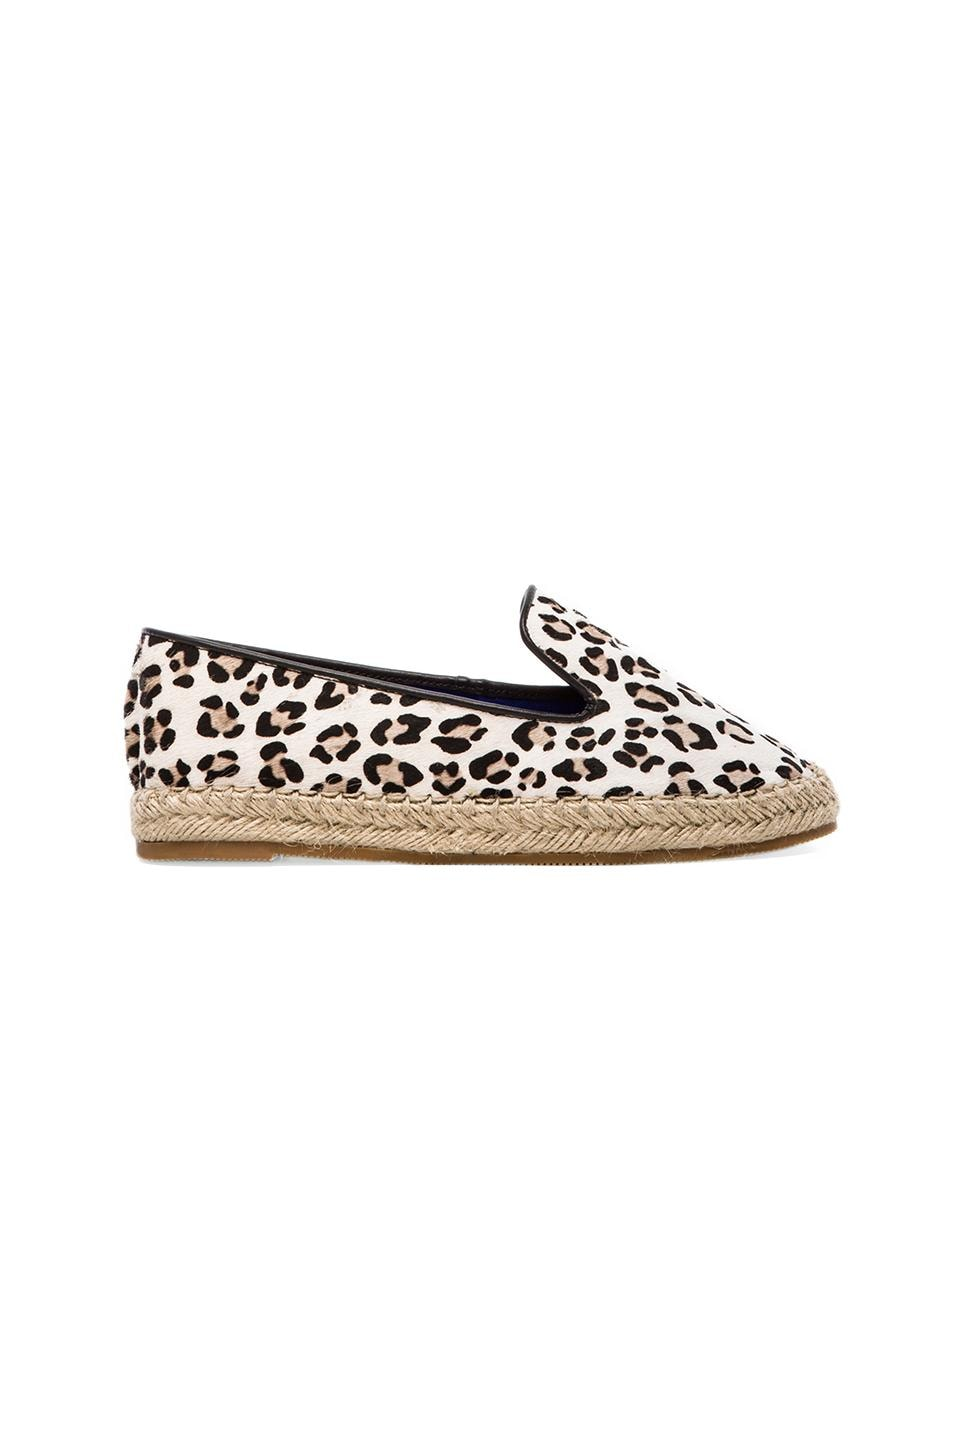 Jeffrey Campbell Abides-F Flat with Calf Fur en Black & White Cheetah